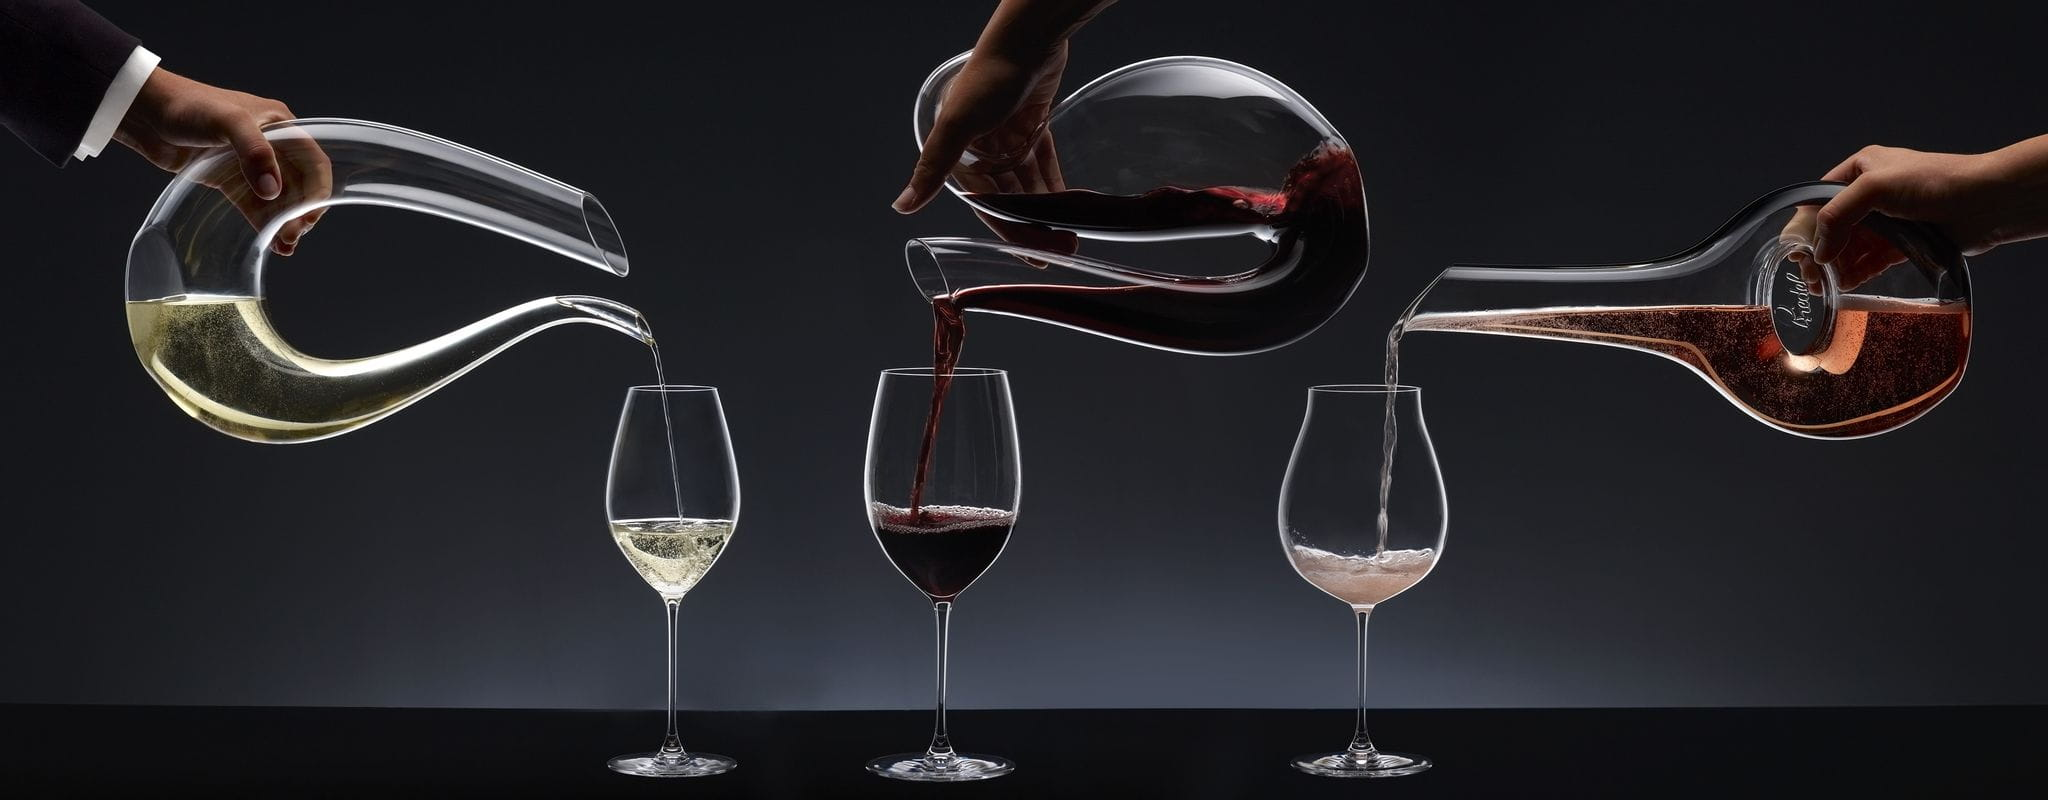 The art of wine decanting with RIEDEL decanters